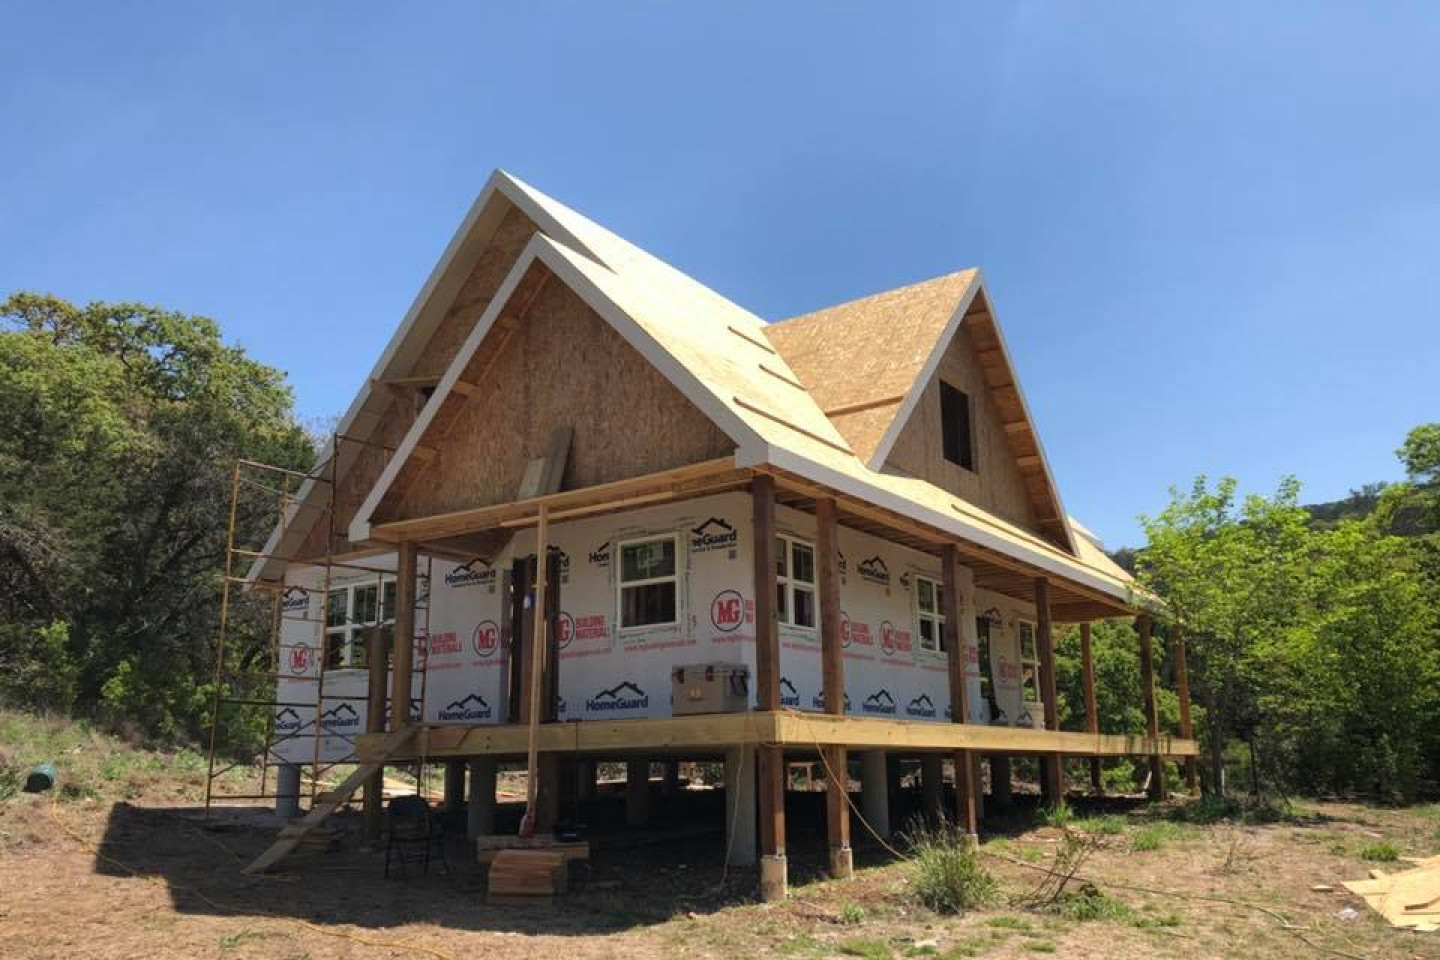 Construction process of a custom home built by Ideal Place in Uvalde, TX